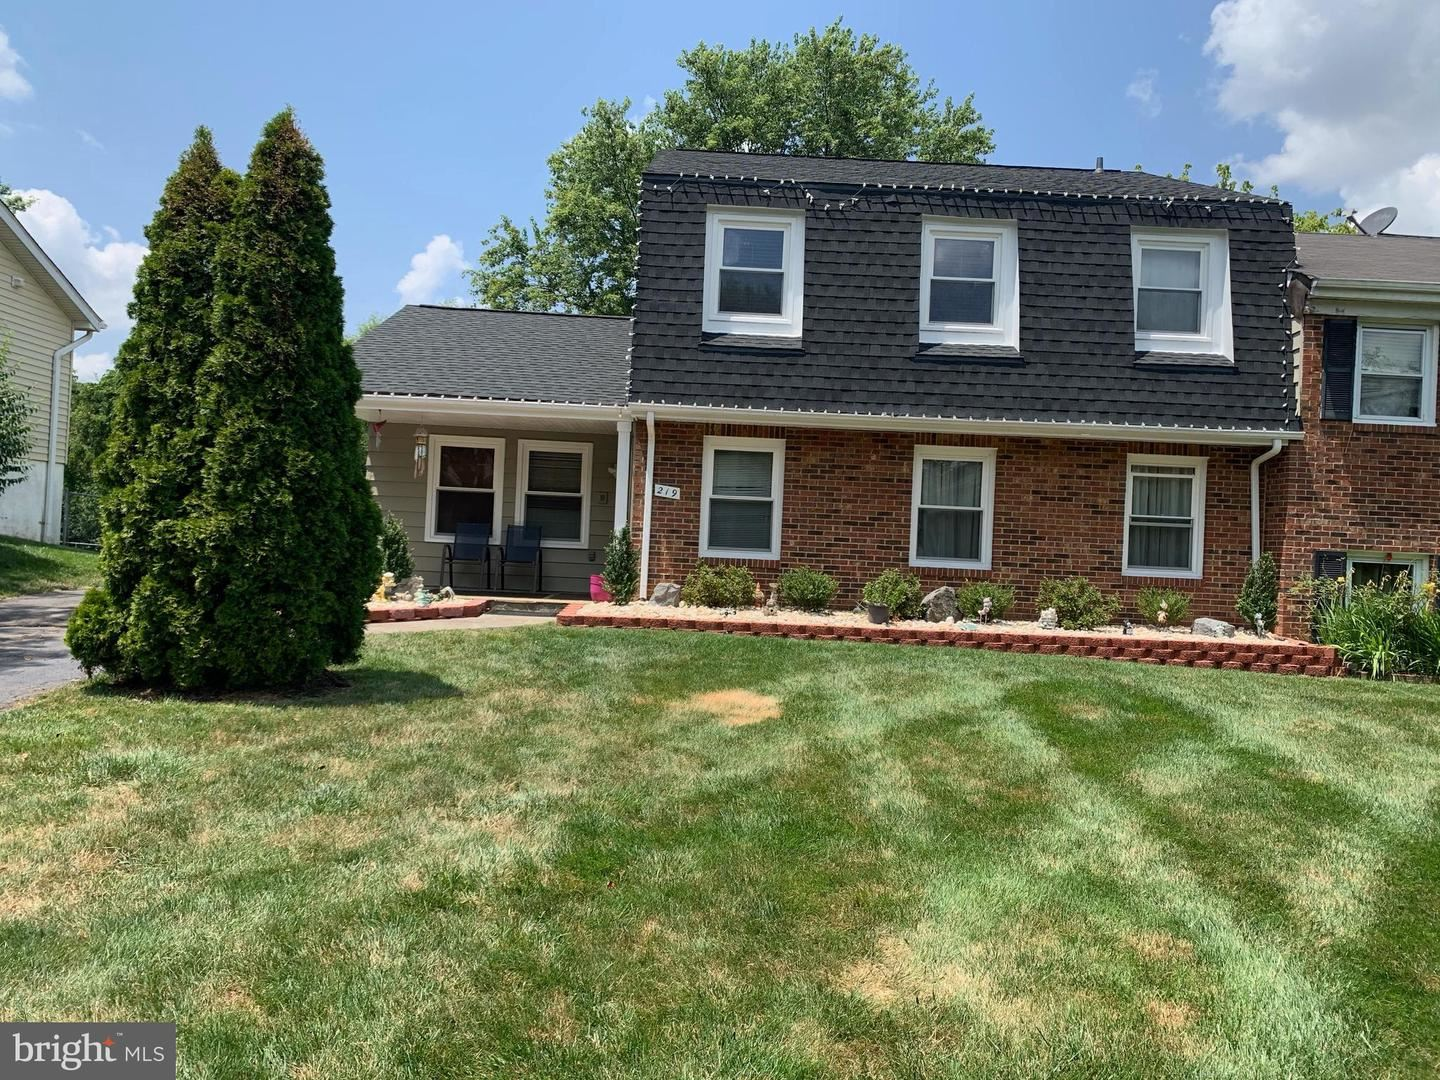 Photo of 219 N LINCOLN AVE, STERLING, VA 20164 (MLS # VALO2004028)